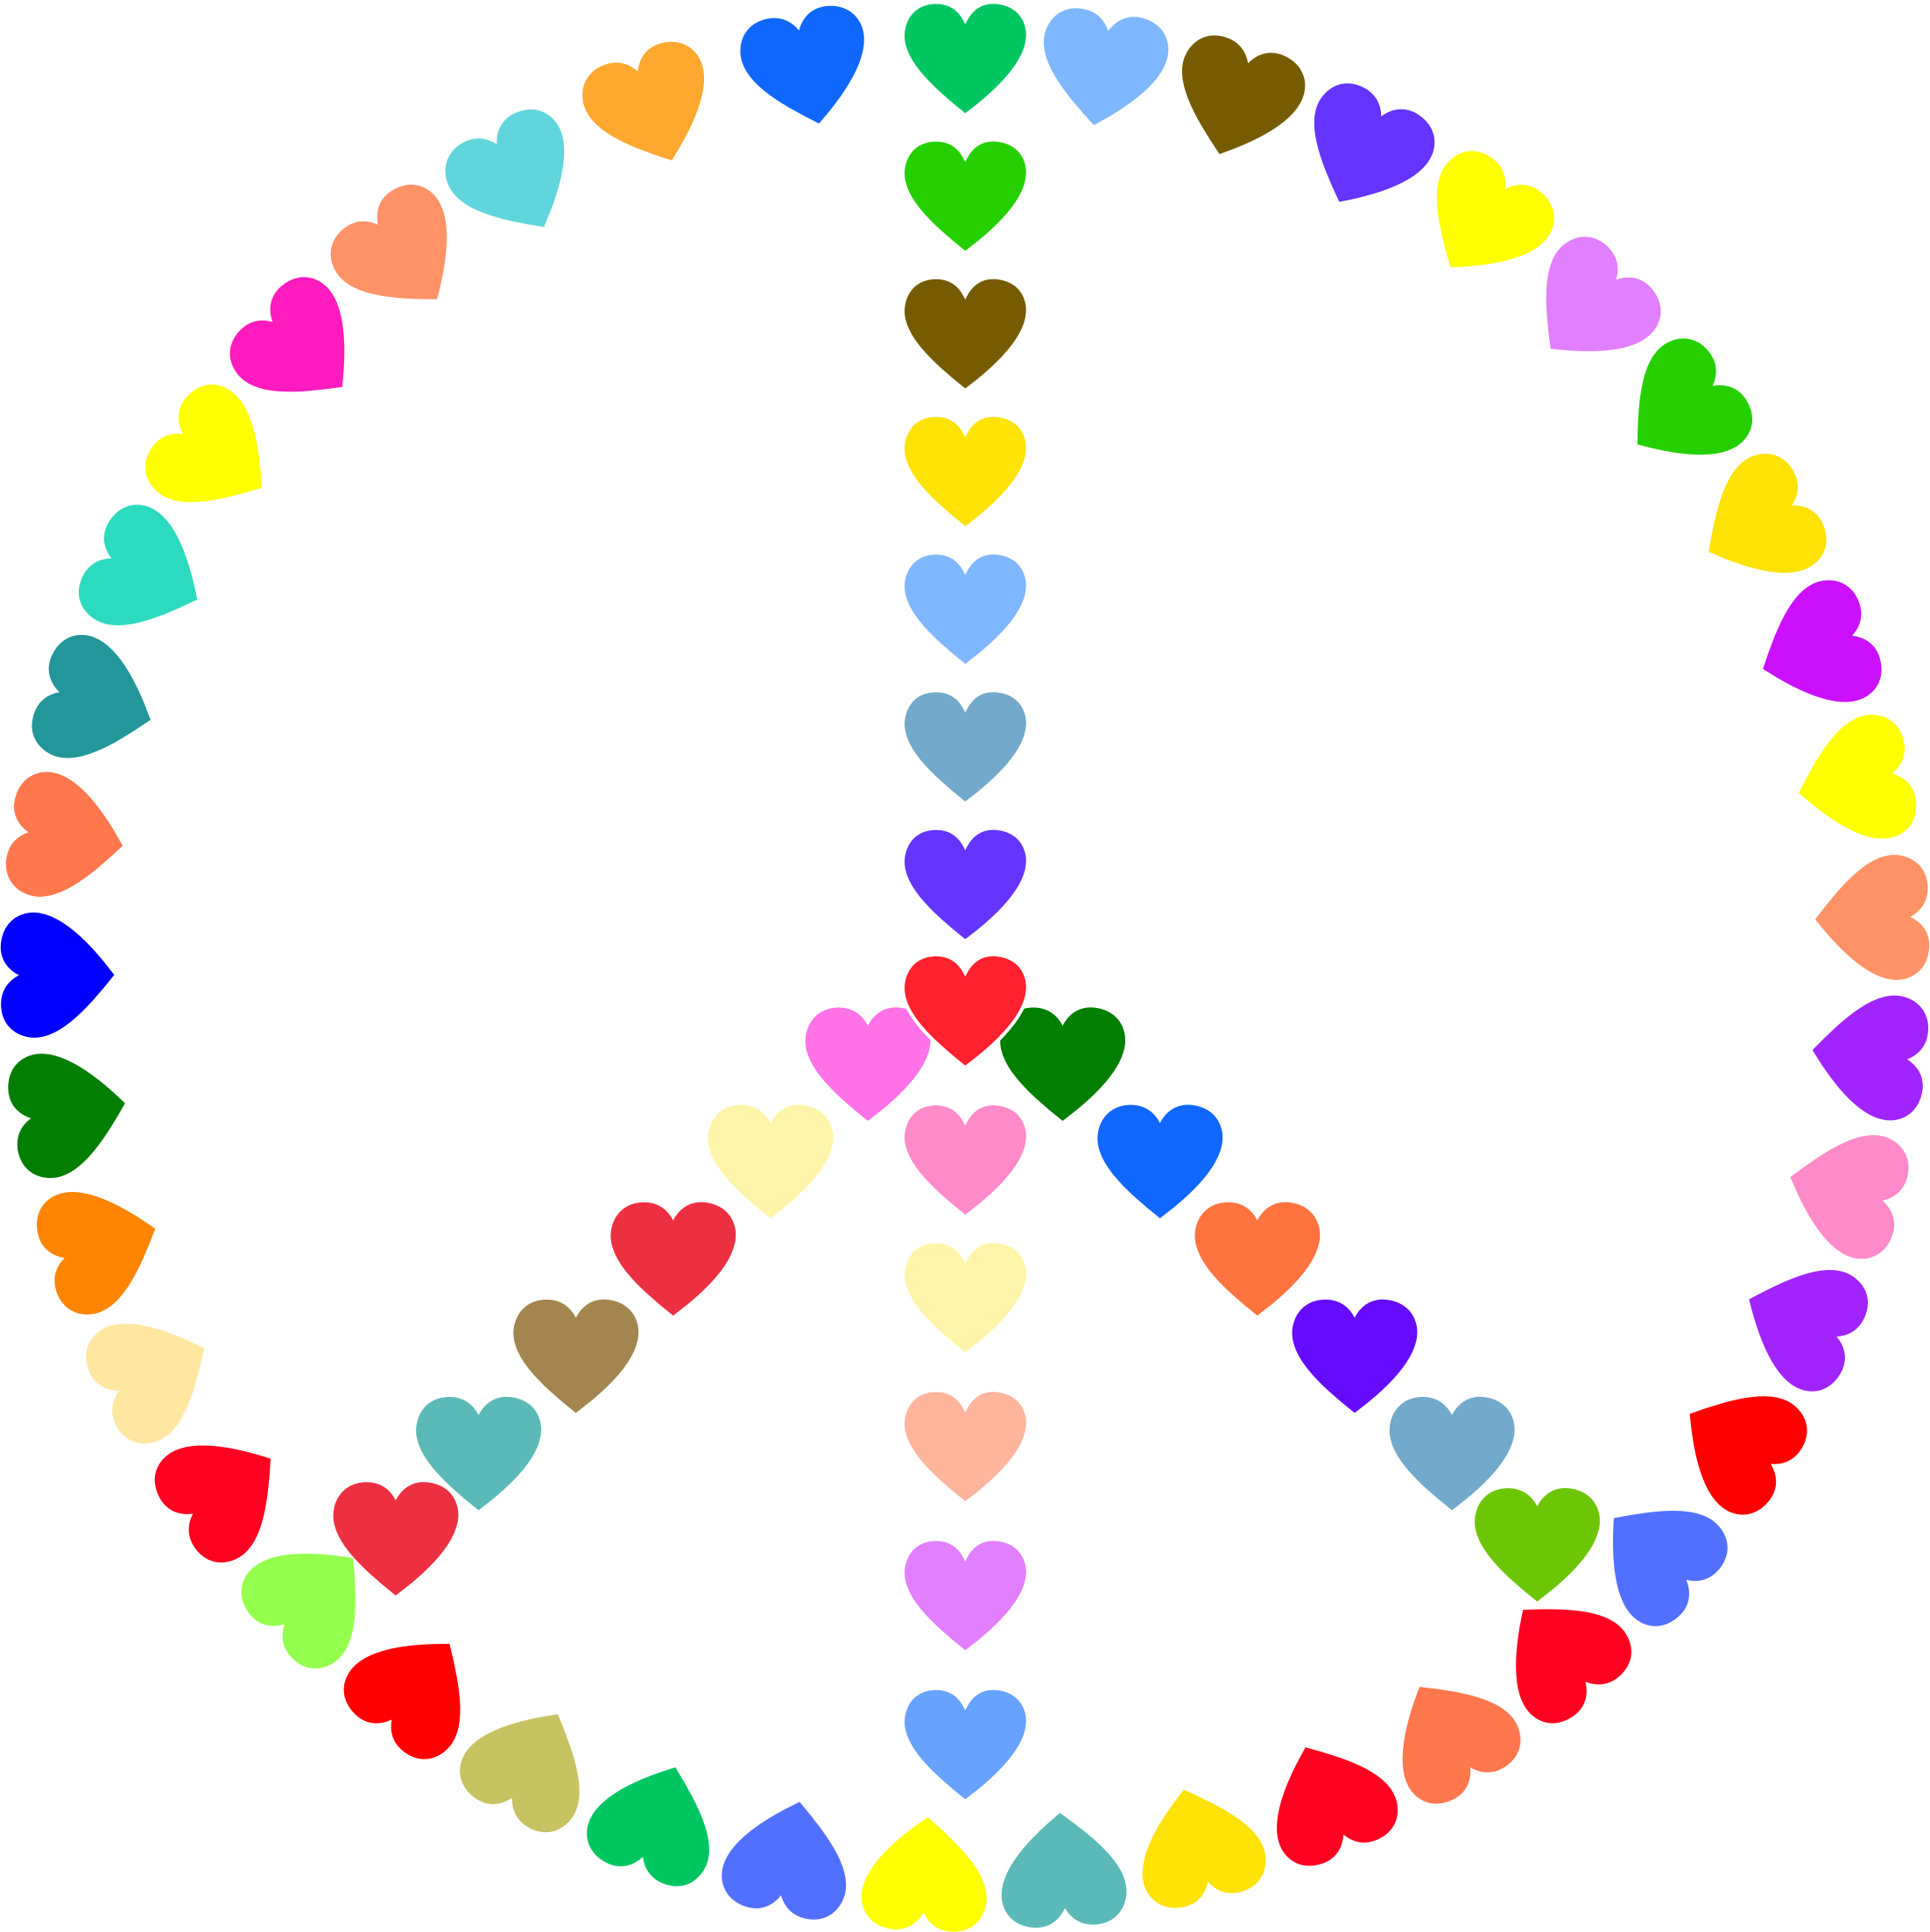 Clipart colorful peace sign love - dbclipart.com clipart free library